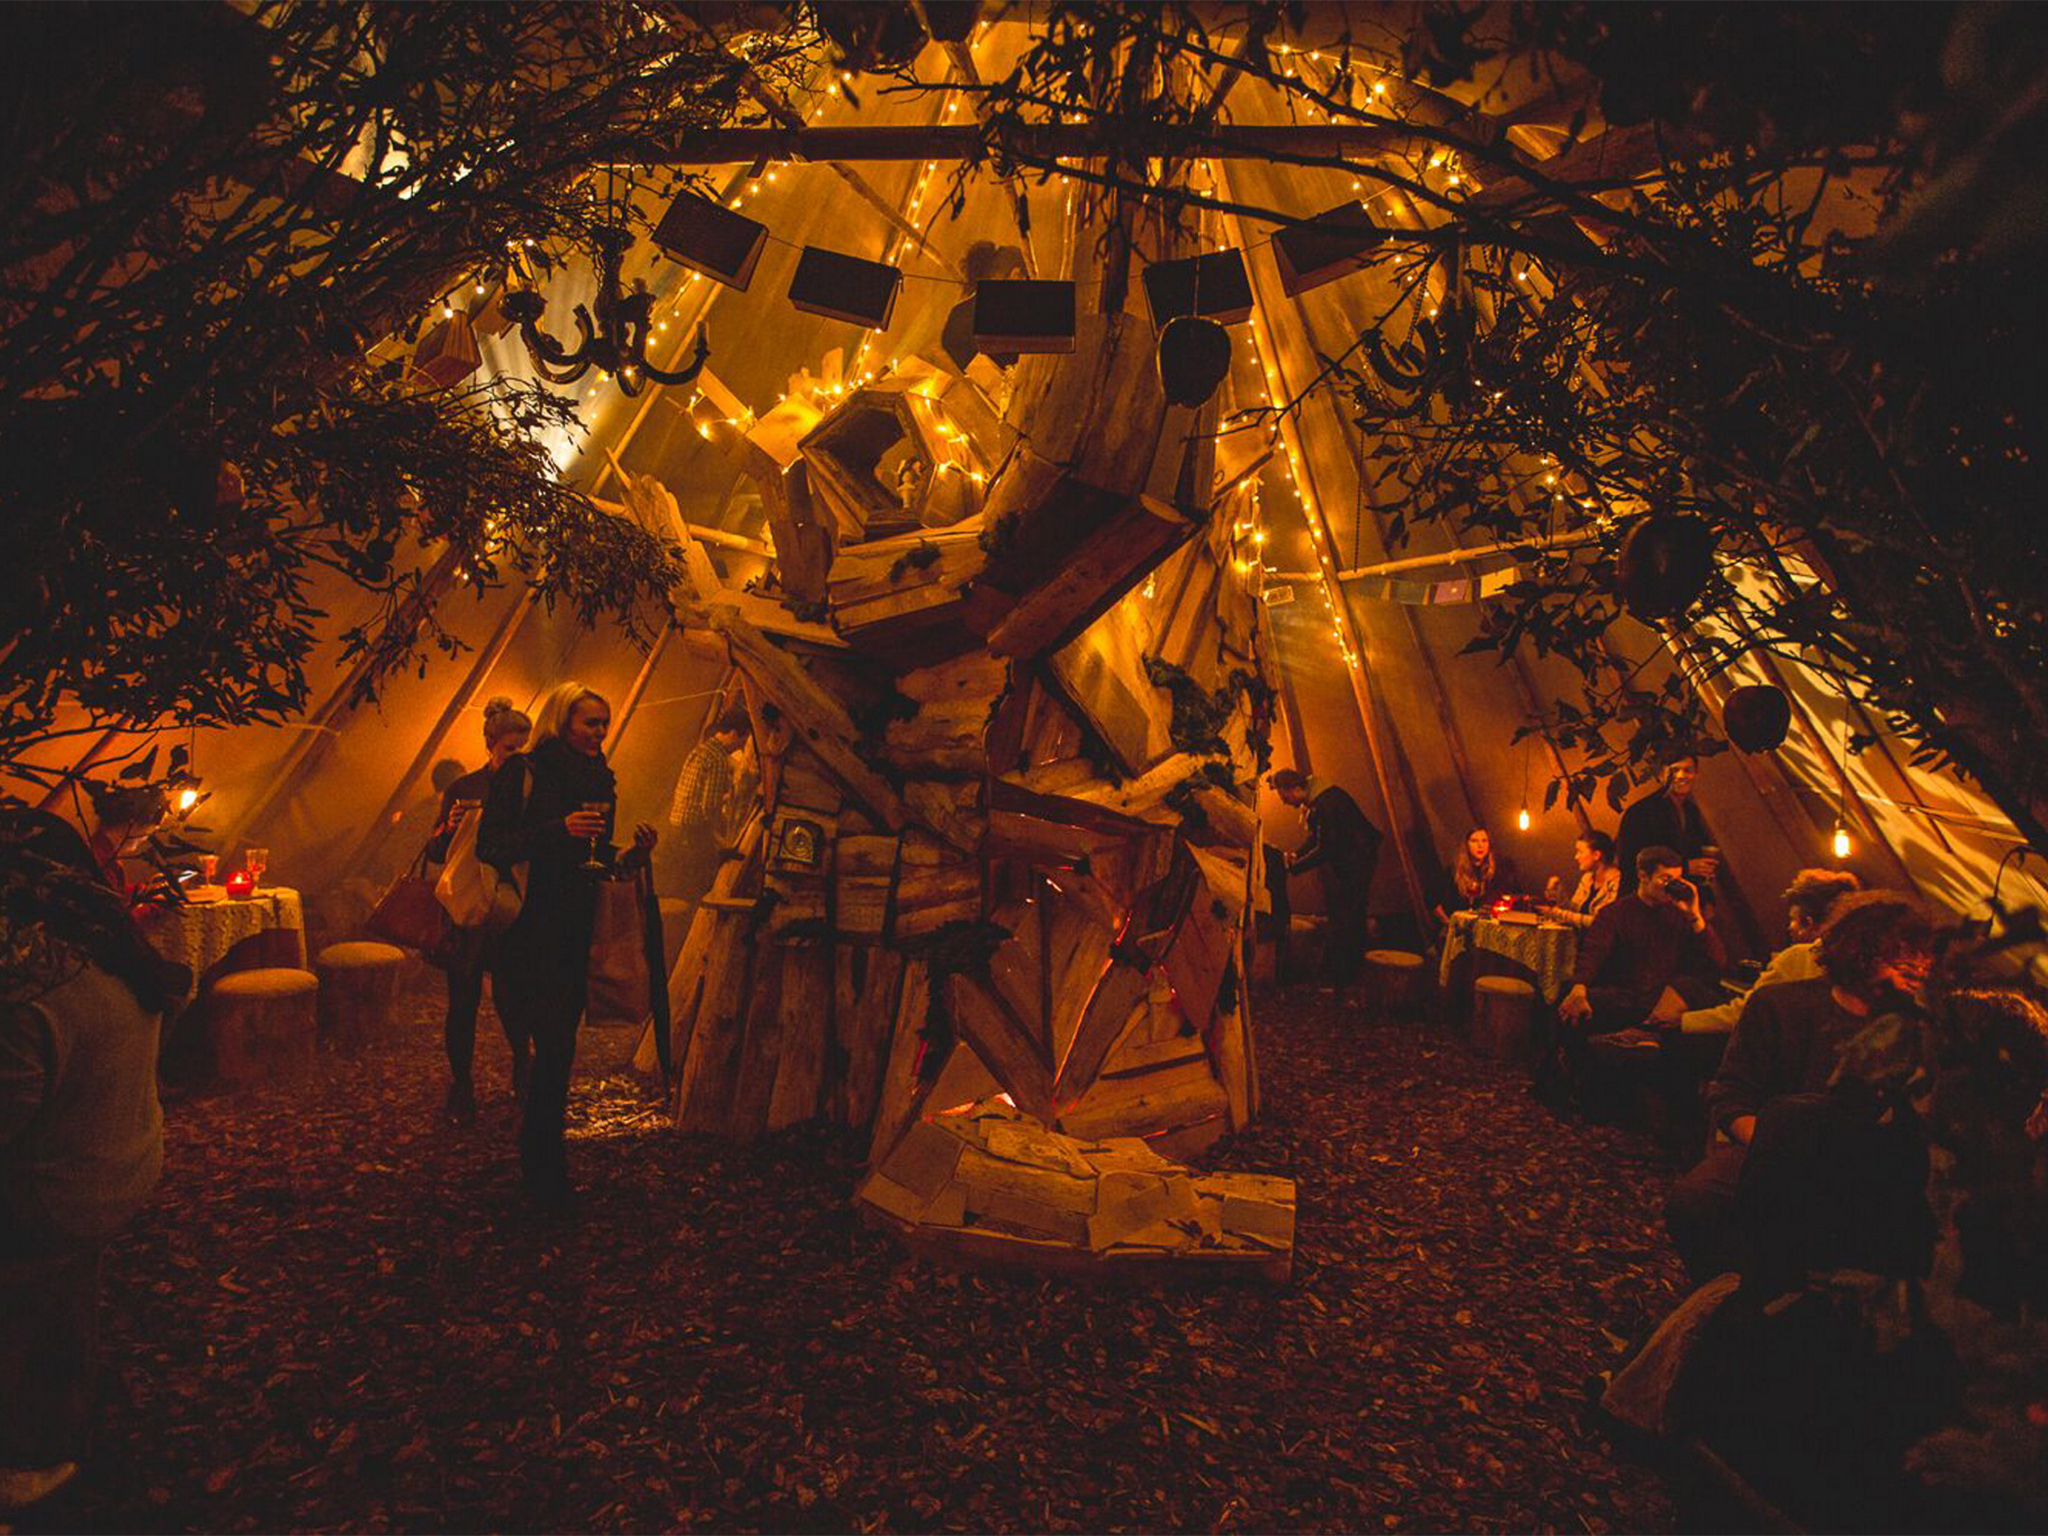 Enjoy rooftop fairy tales and ales at the Queen of Hoxton